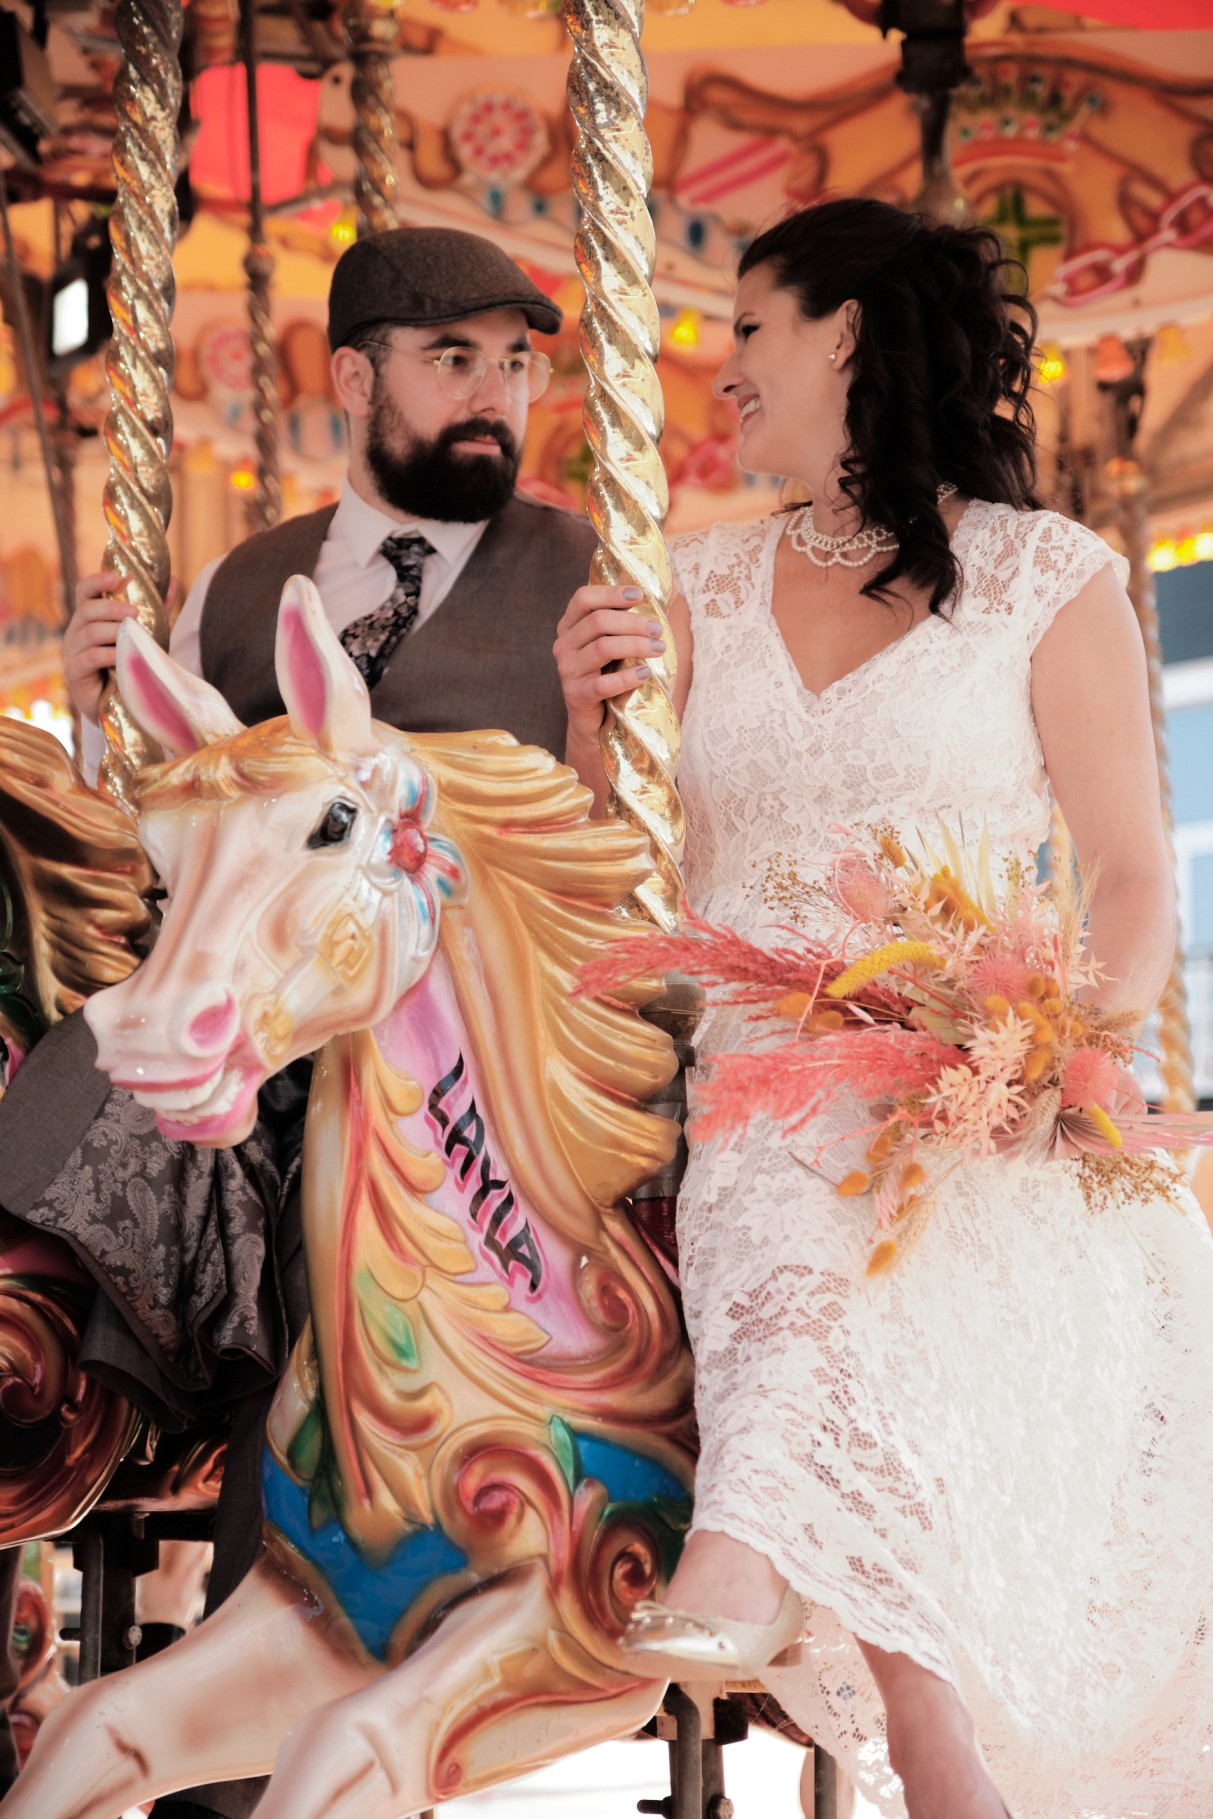 city elopement- cardiff bay wedding- wales elopement- urban elopement - cardiff wedding - colourful summer wedding- wedding photos on carousel